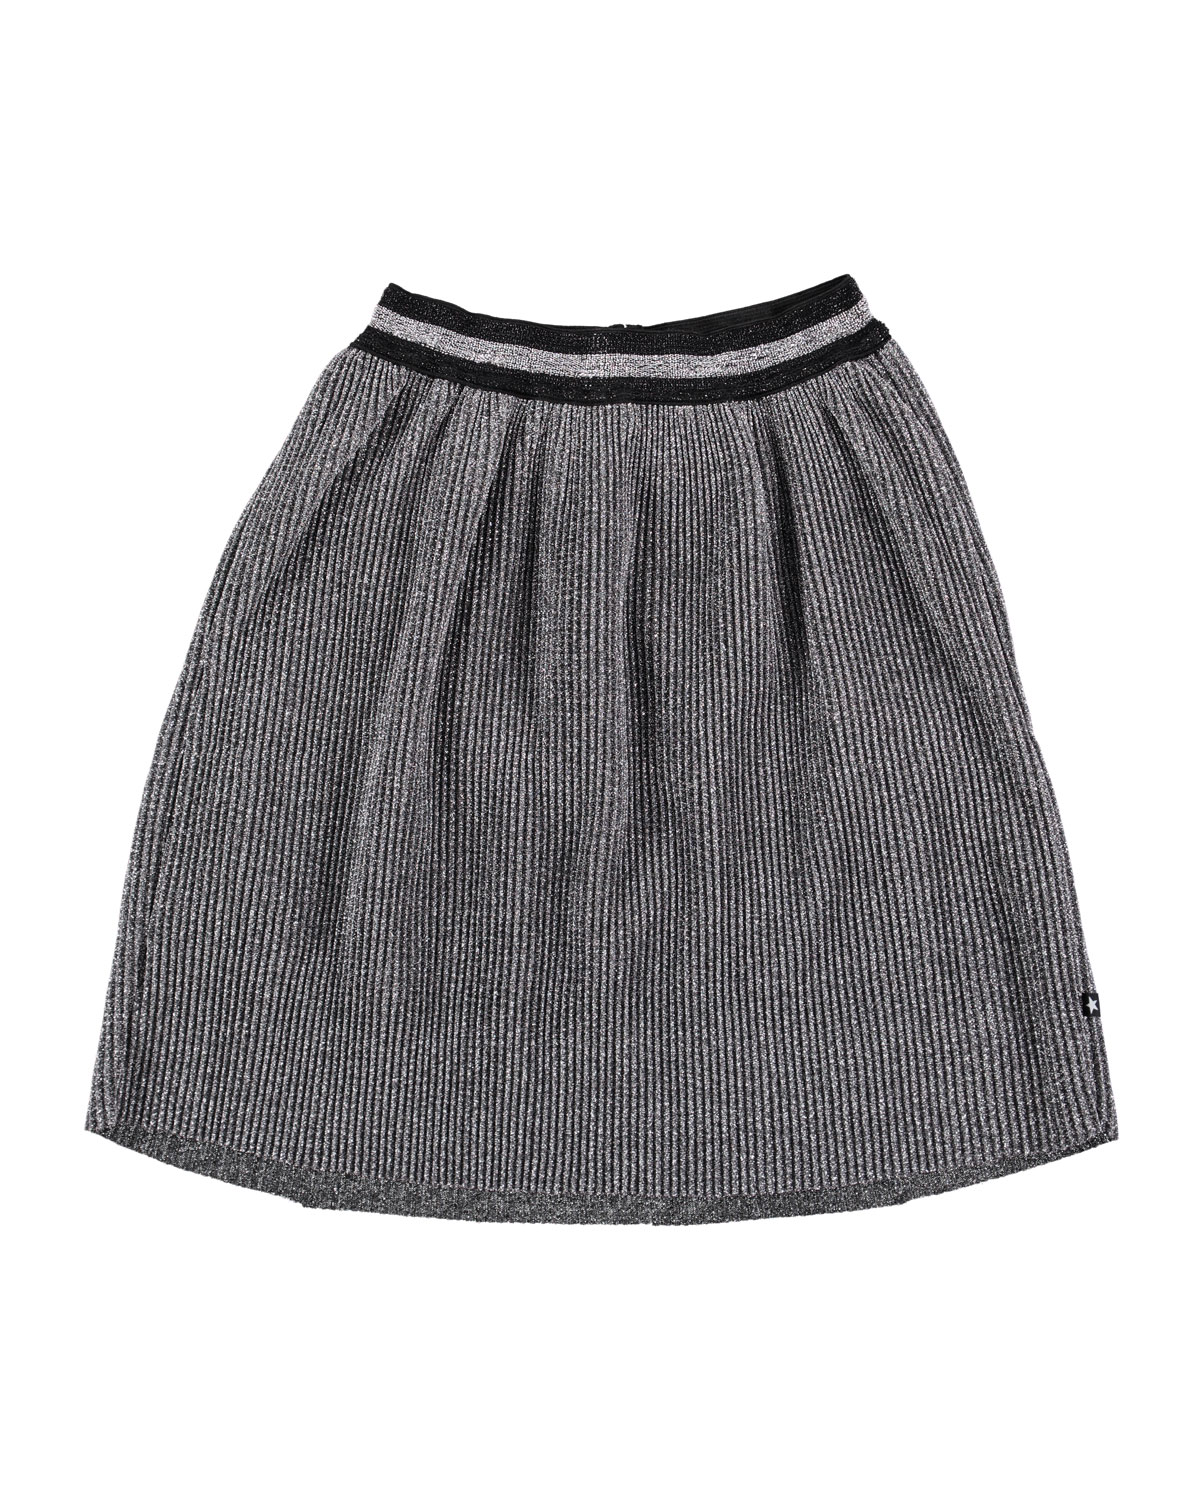 Molo BIRDIE METALLIC PLEATED SKIRT